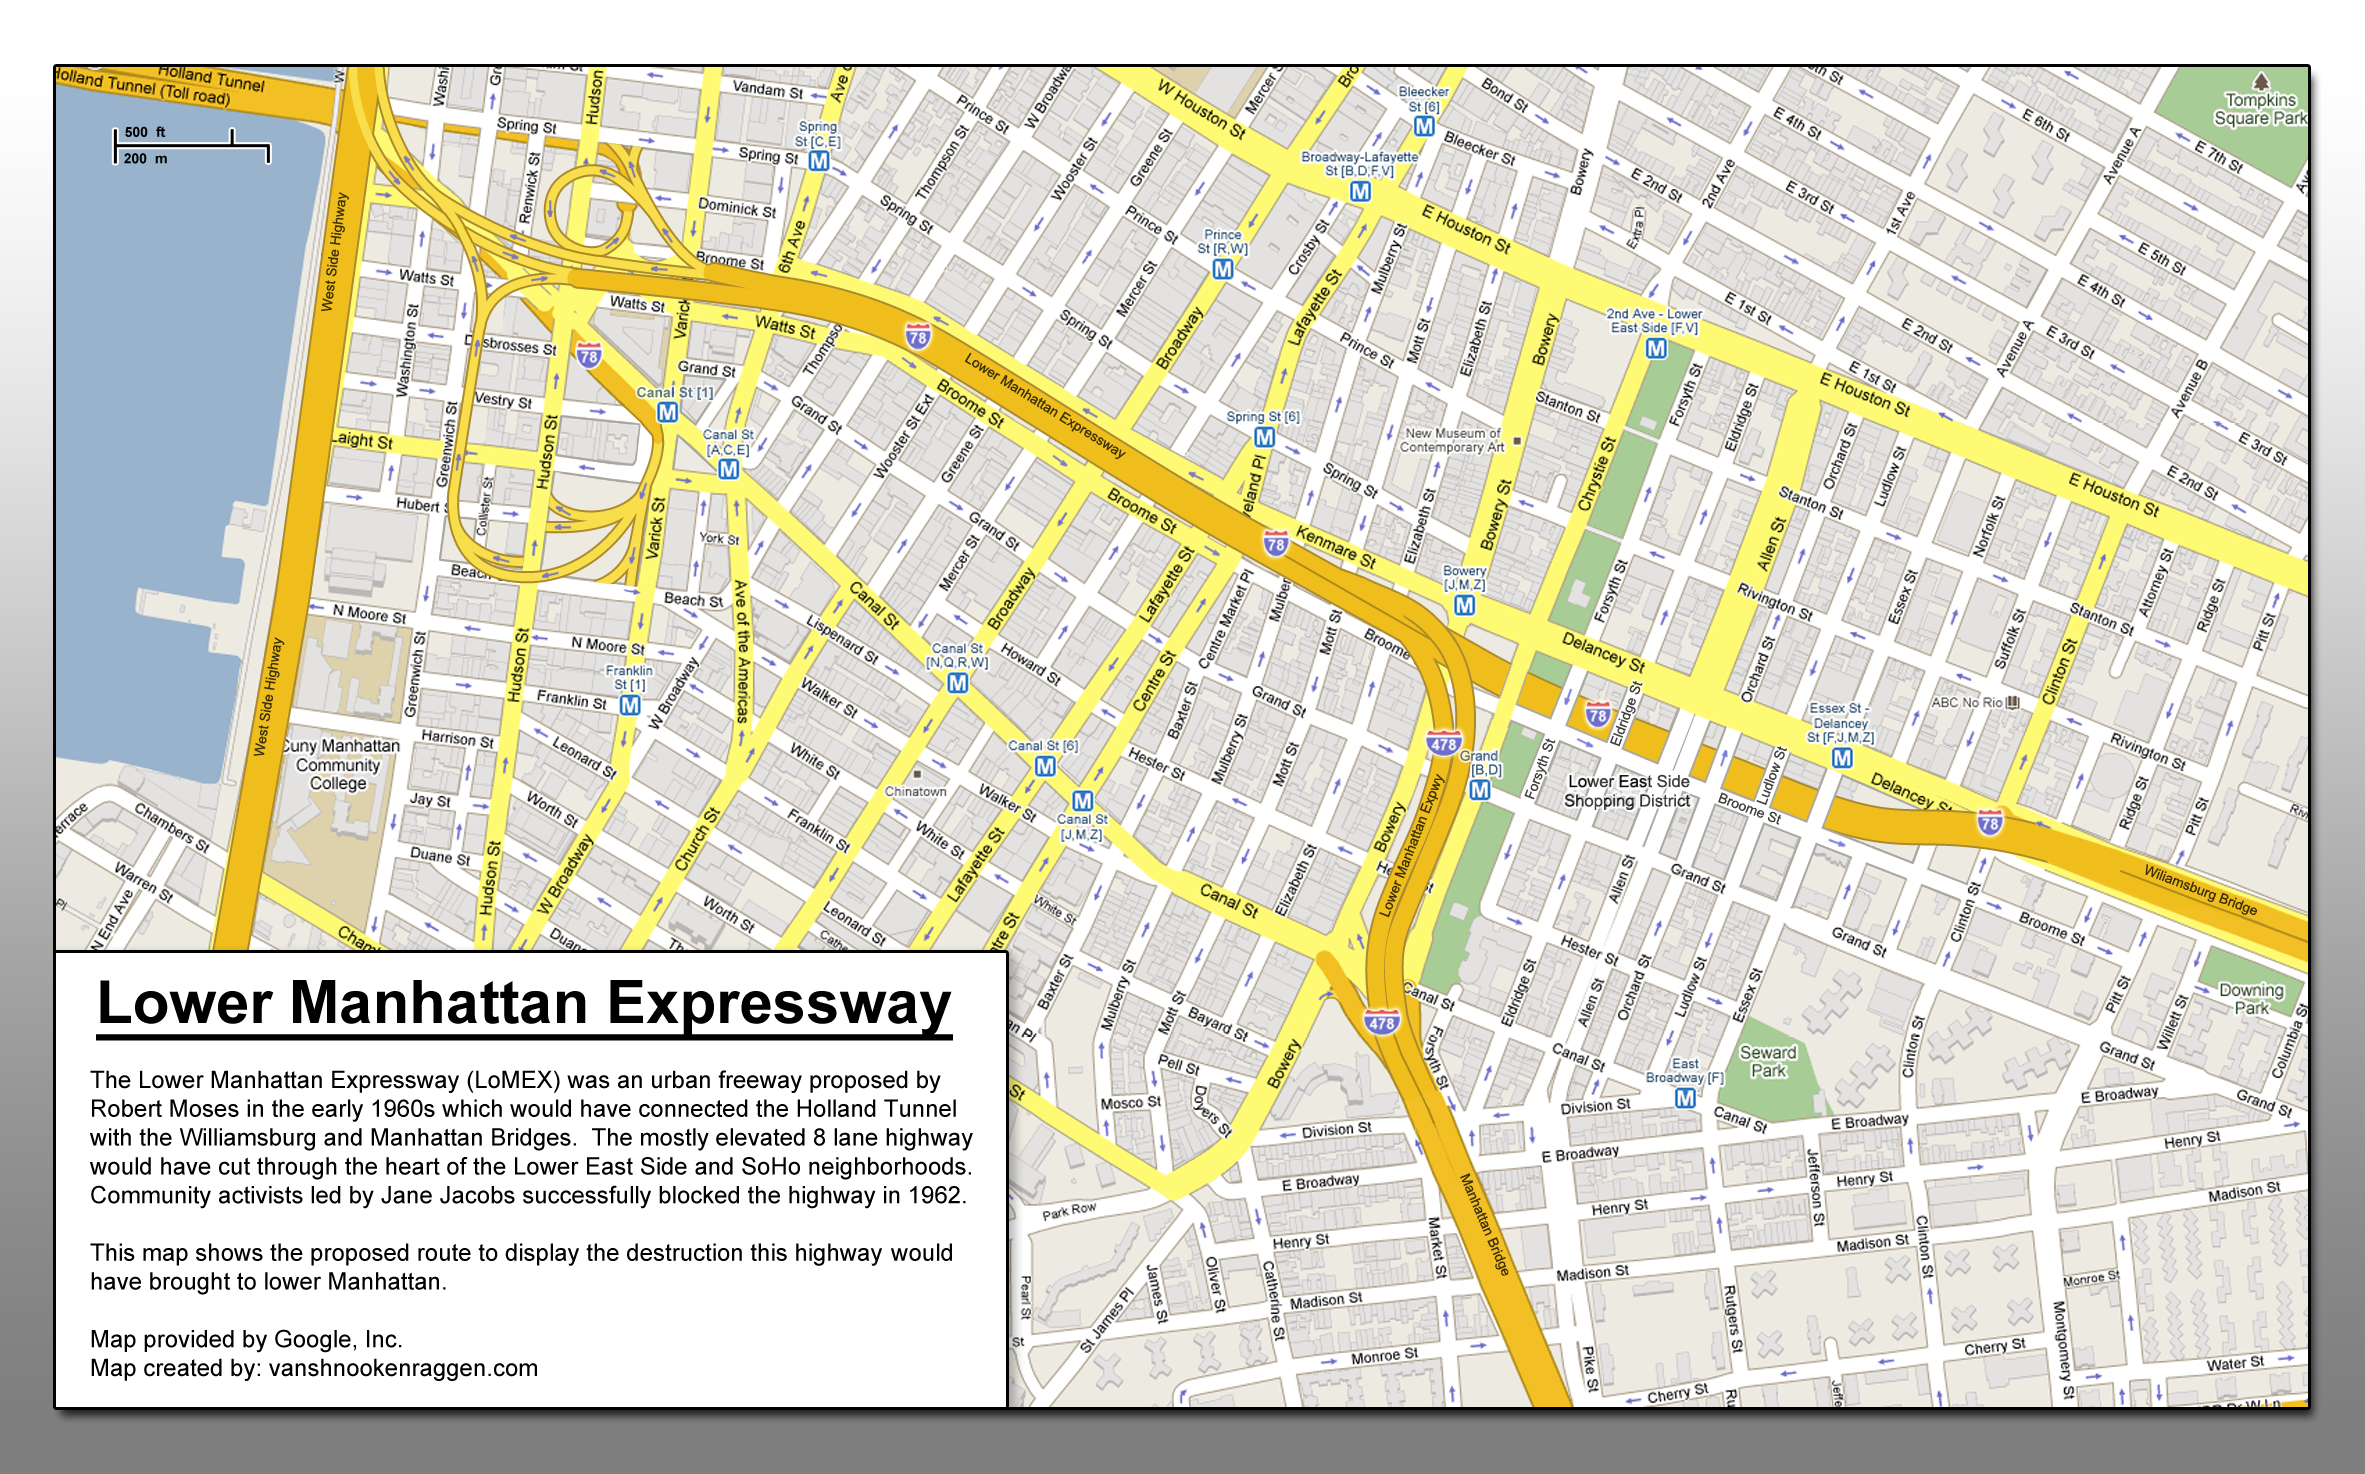 Google Map of Proposed Lower Manhattan Expressway PNG (2365 ... on aerial map of manhattan, mapquest manhattan, top aerial view of manhattan, new york map manhattan, walking directions manhattan, all zip codes manhattan, 3d map of manhattan, google map of hoboken nj, foley square manhattan, morgan library manhattan, detailed map of manhattan, sixth avenue manhattan, 25 broadway manhattan, map of downtown manhattan, united states map manhattan, black and white map of manhattan, opentable manhattan, map of lower manhattan, early maps of manhattan, google earth manhattan,